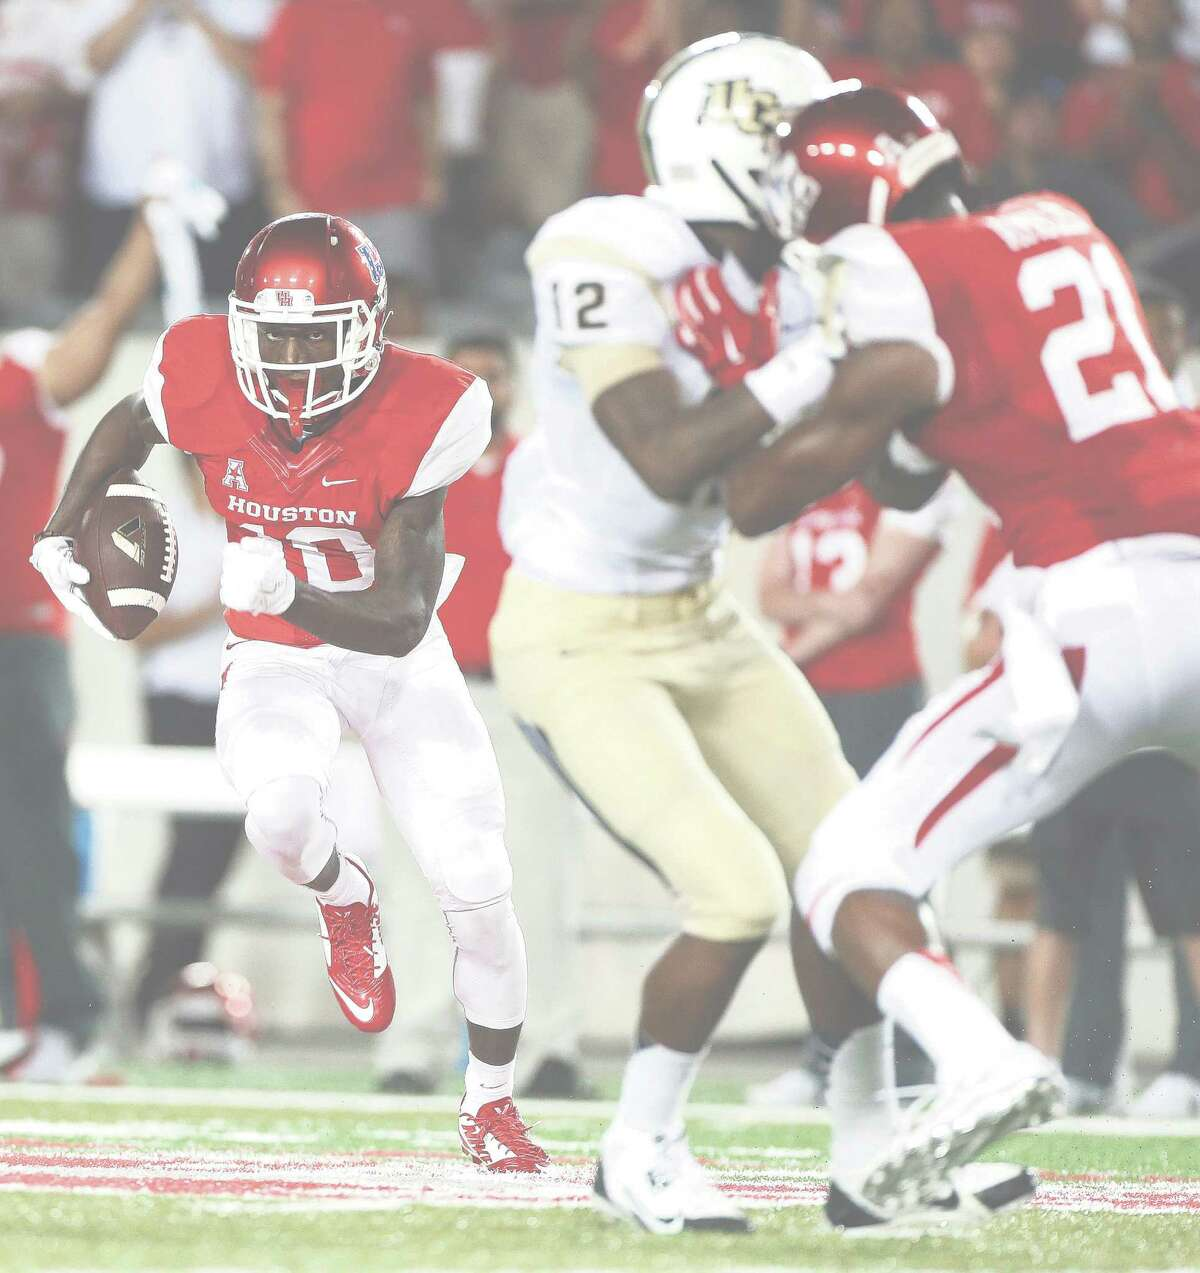 Houston Cougars wide receiver Demarcus Ayers (10) runs the ball near the goal line during the fourth quarter of a college football game at TDECU Stadium at the University of Houston, Thursday, Oct. 2, 2014, in Houston. ( Karen Warren / Houston Chronicle )